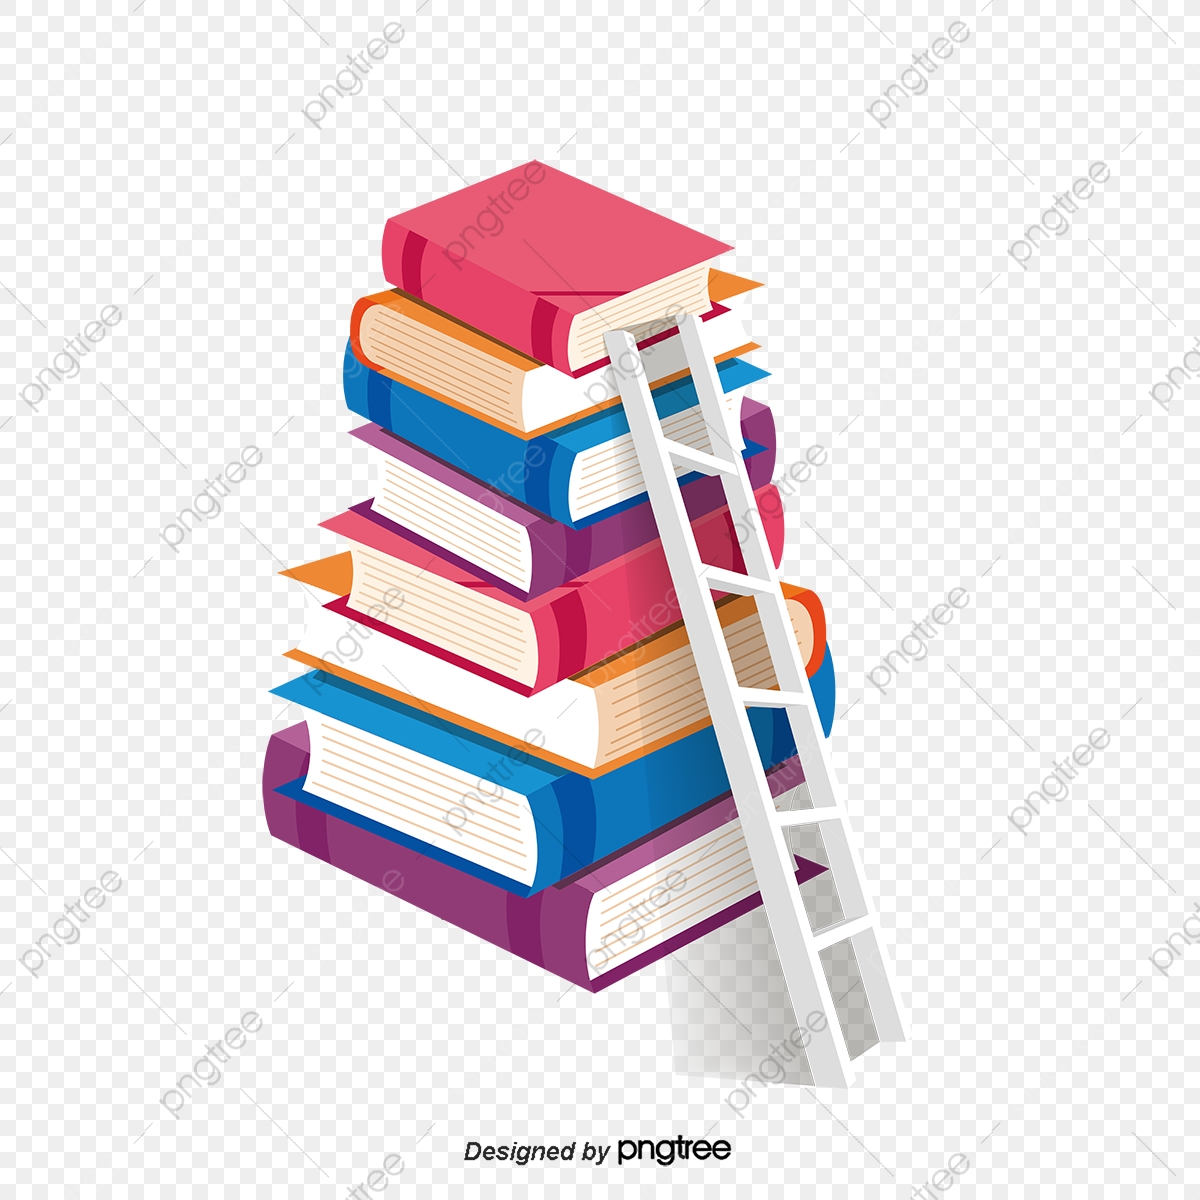 Continental creative educational learning. Ladder clipart education